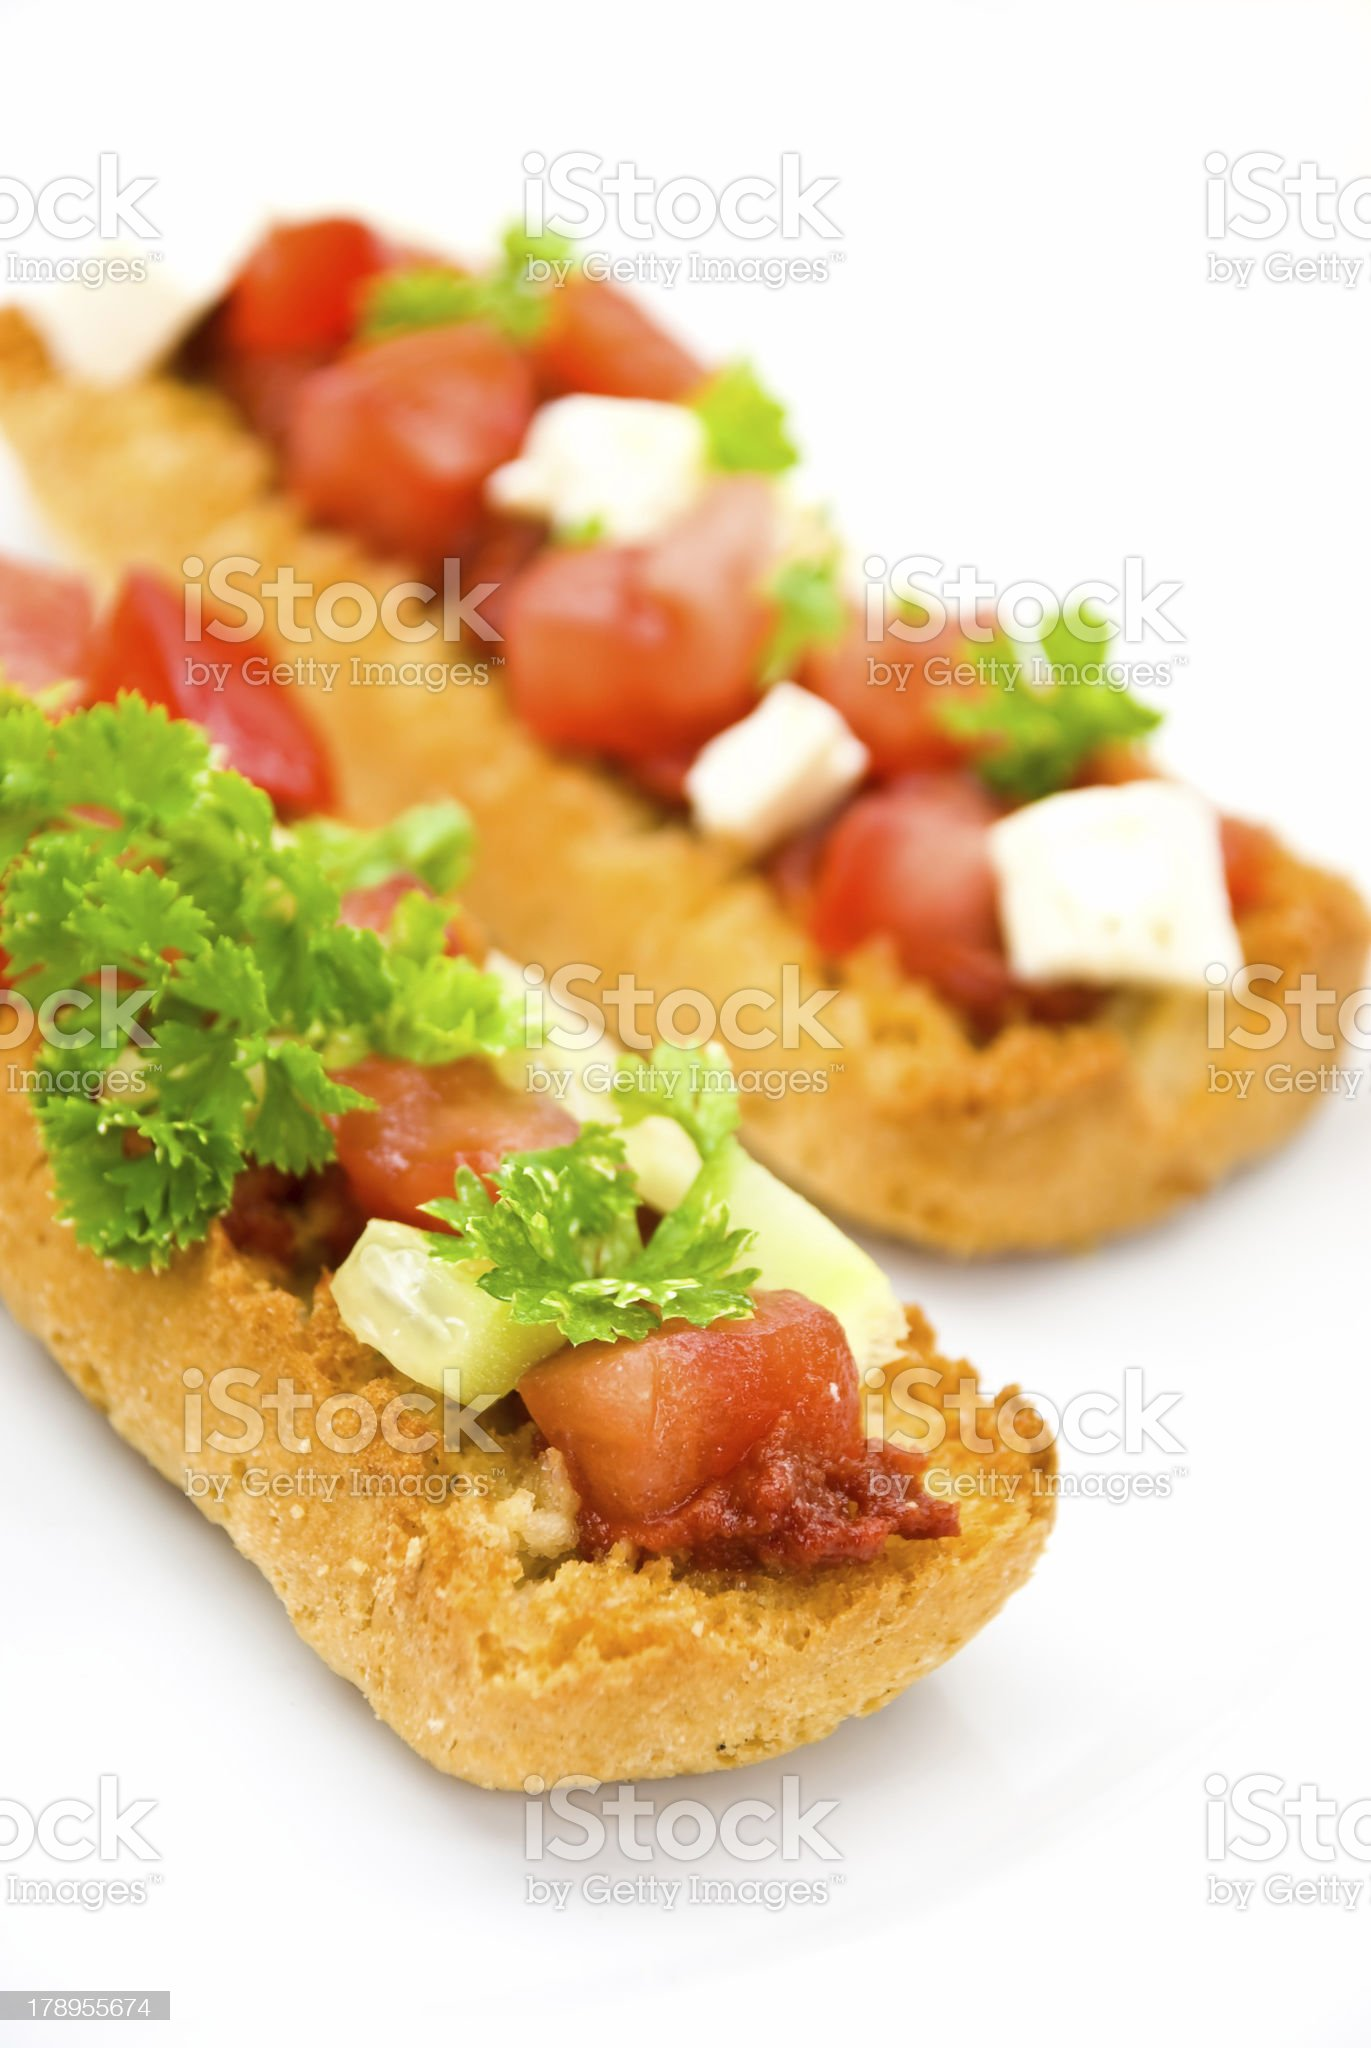 Bruschetta with Cheese,Tomato and Stuffing royalty-free stock photo